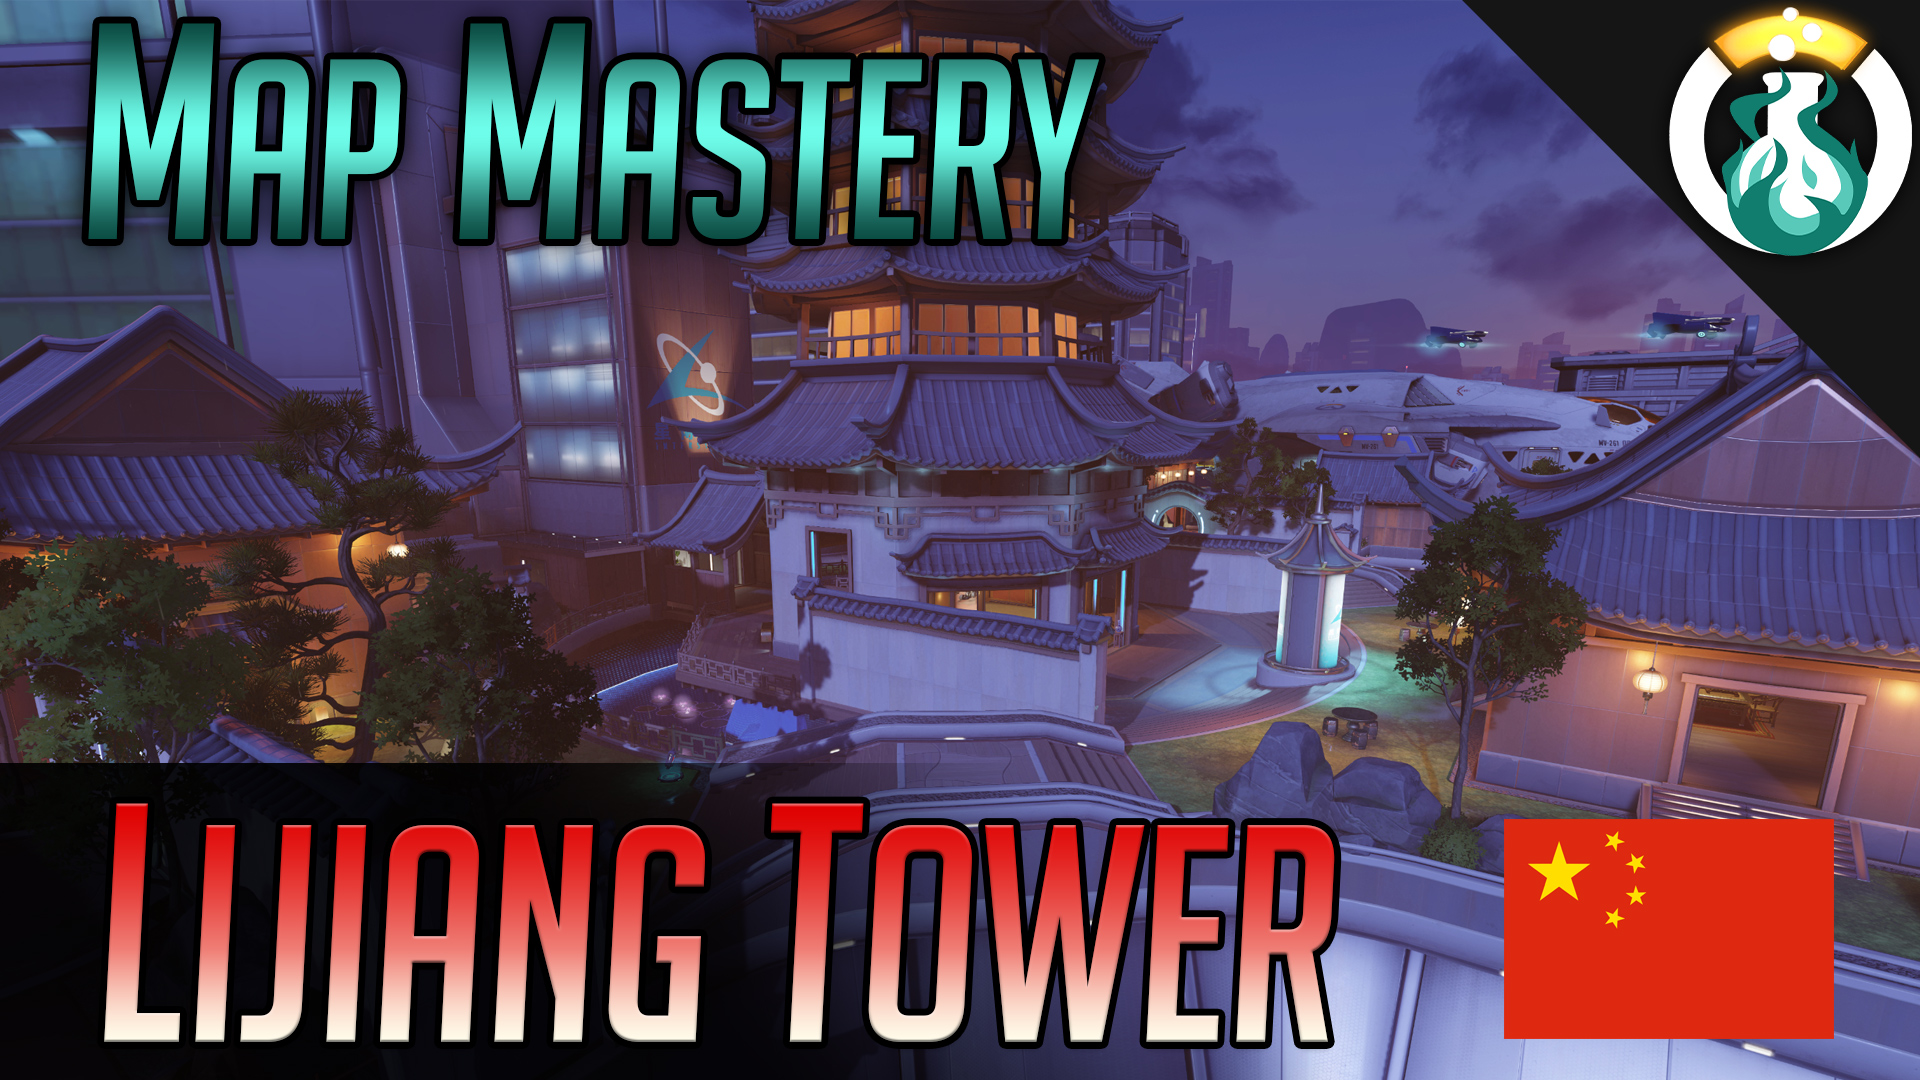 Omnic-Lab-YouTube-Card-96-Lijiang-Tower.jpg